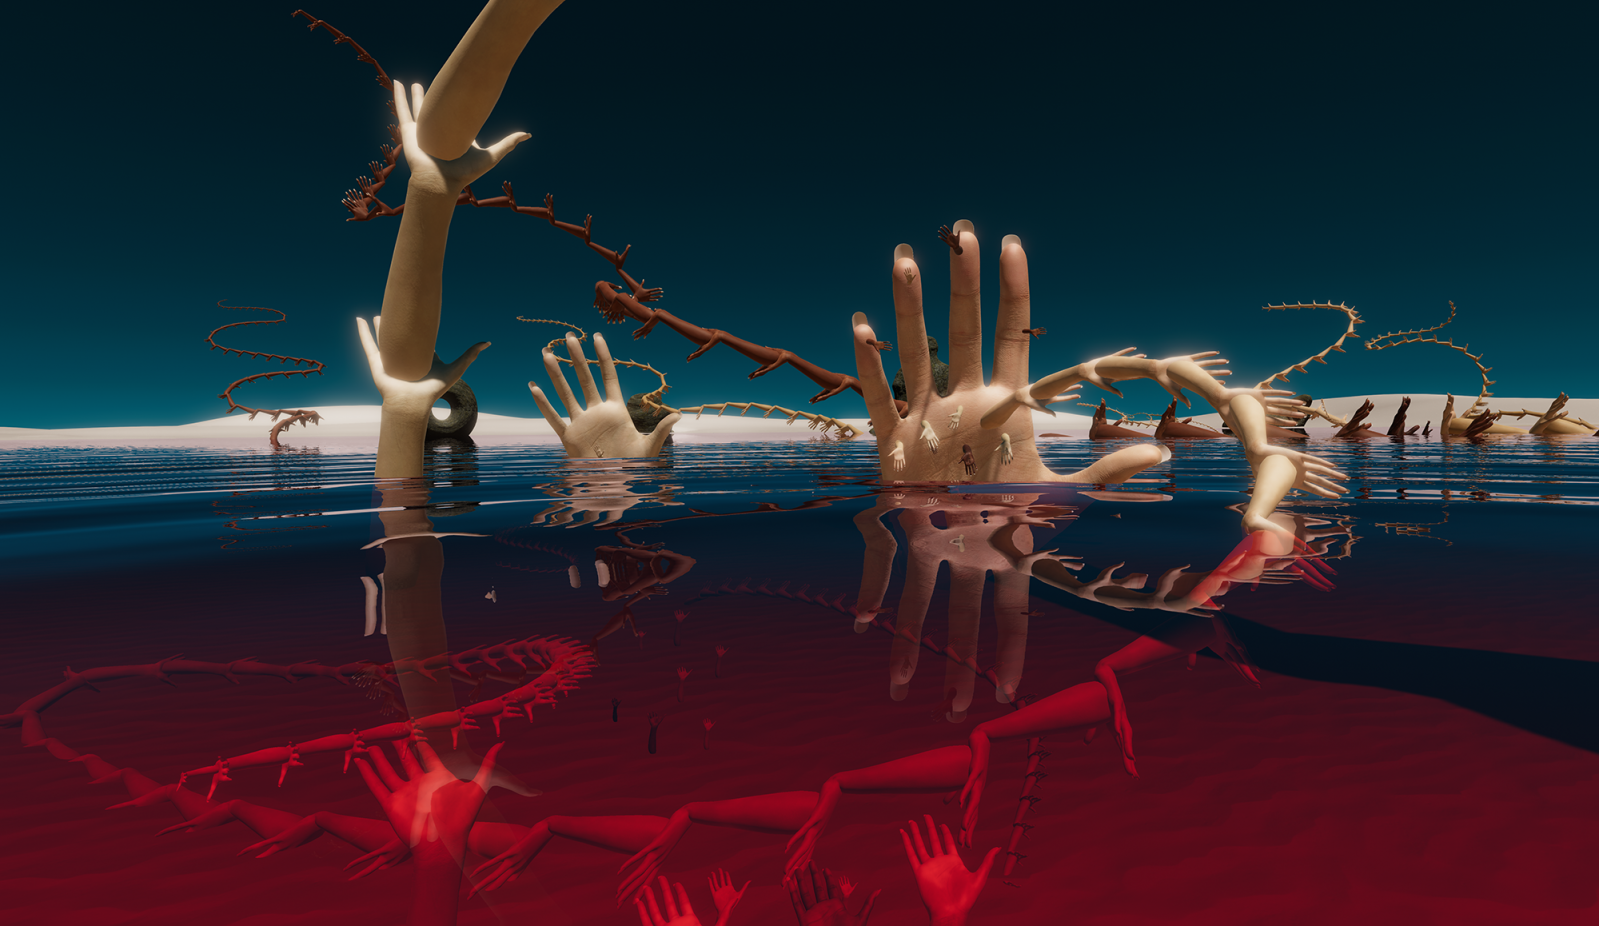 HanaHana : Full bloom, Multi-users VR playground, Mélodie Mousset, 2019. Fabbula